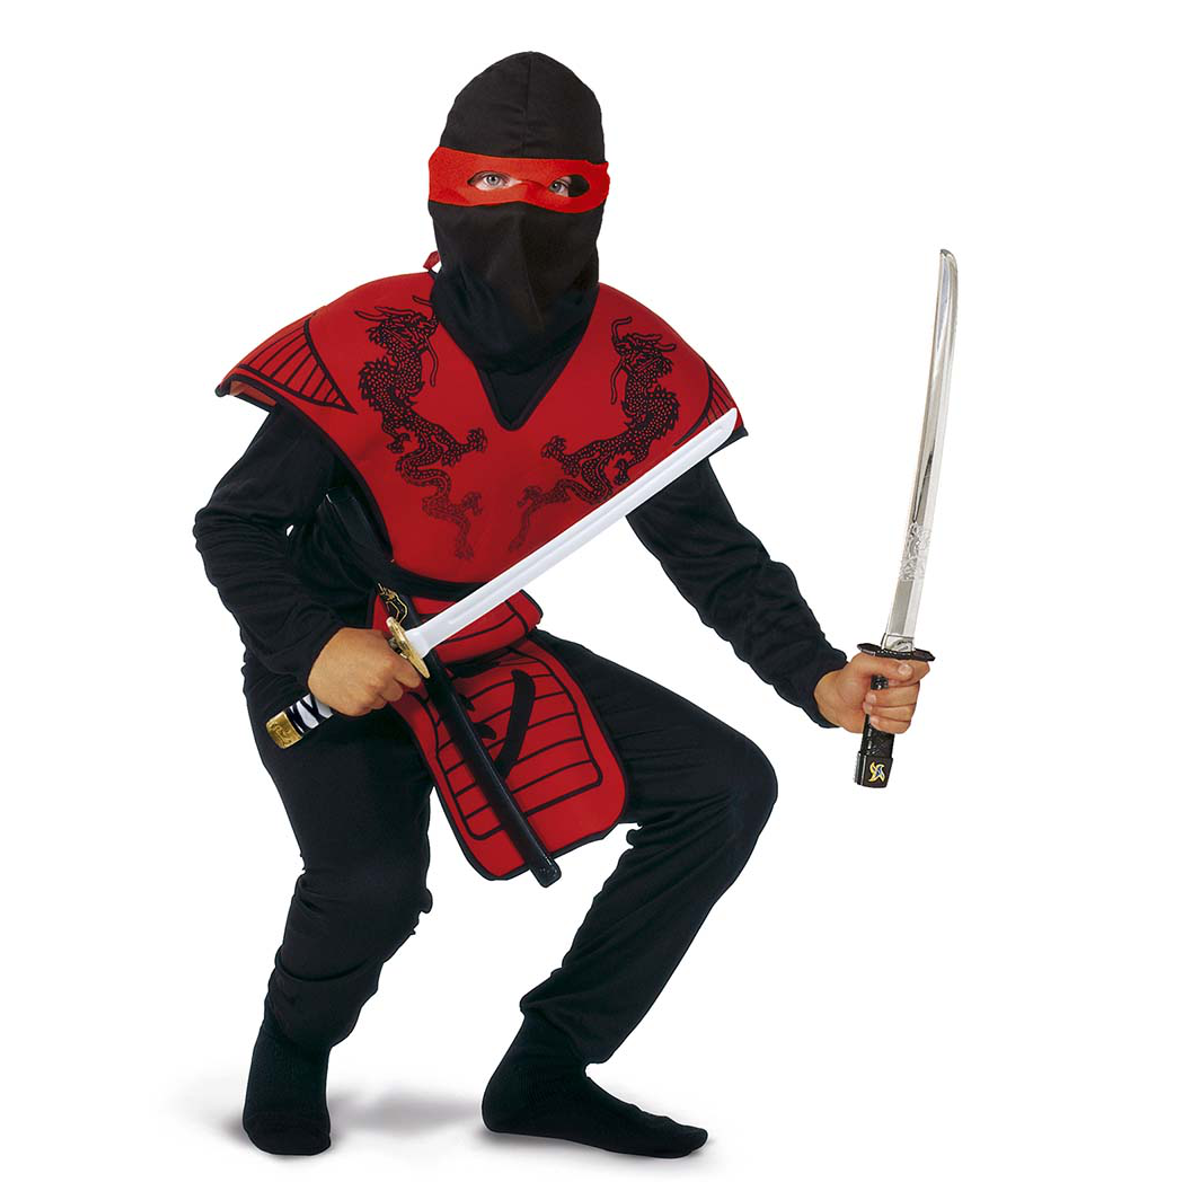 RIO RED NINJA FIGHTER